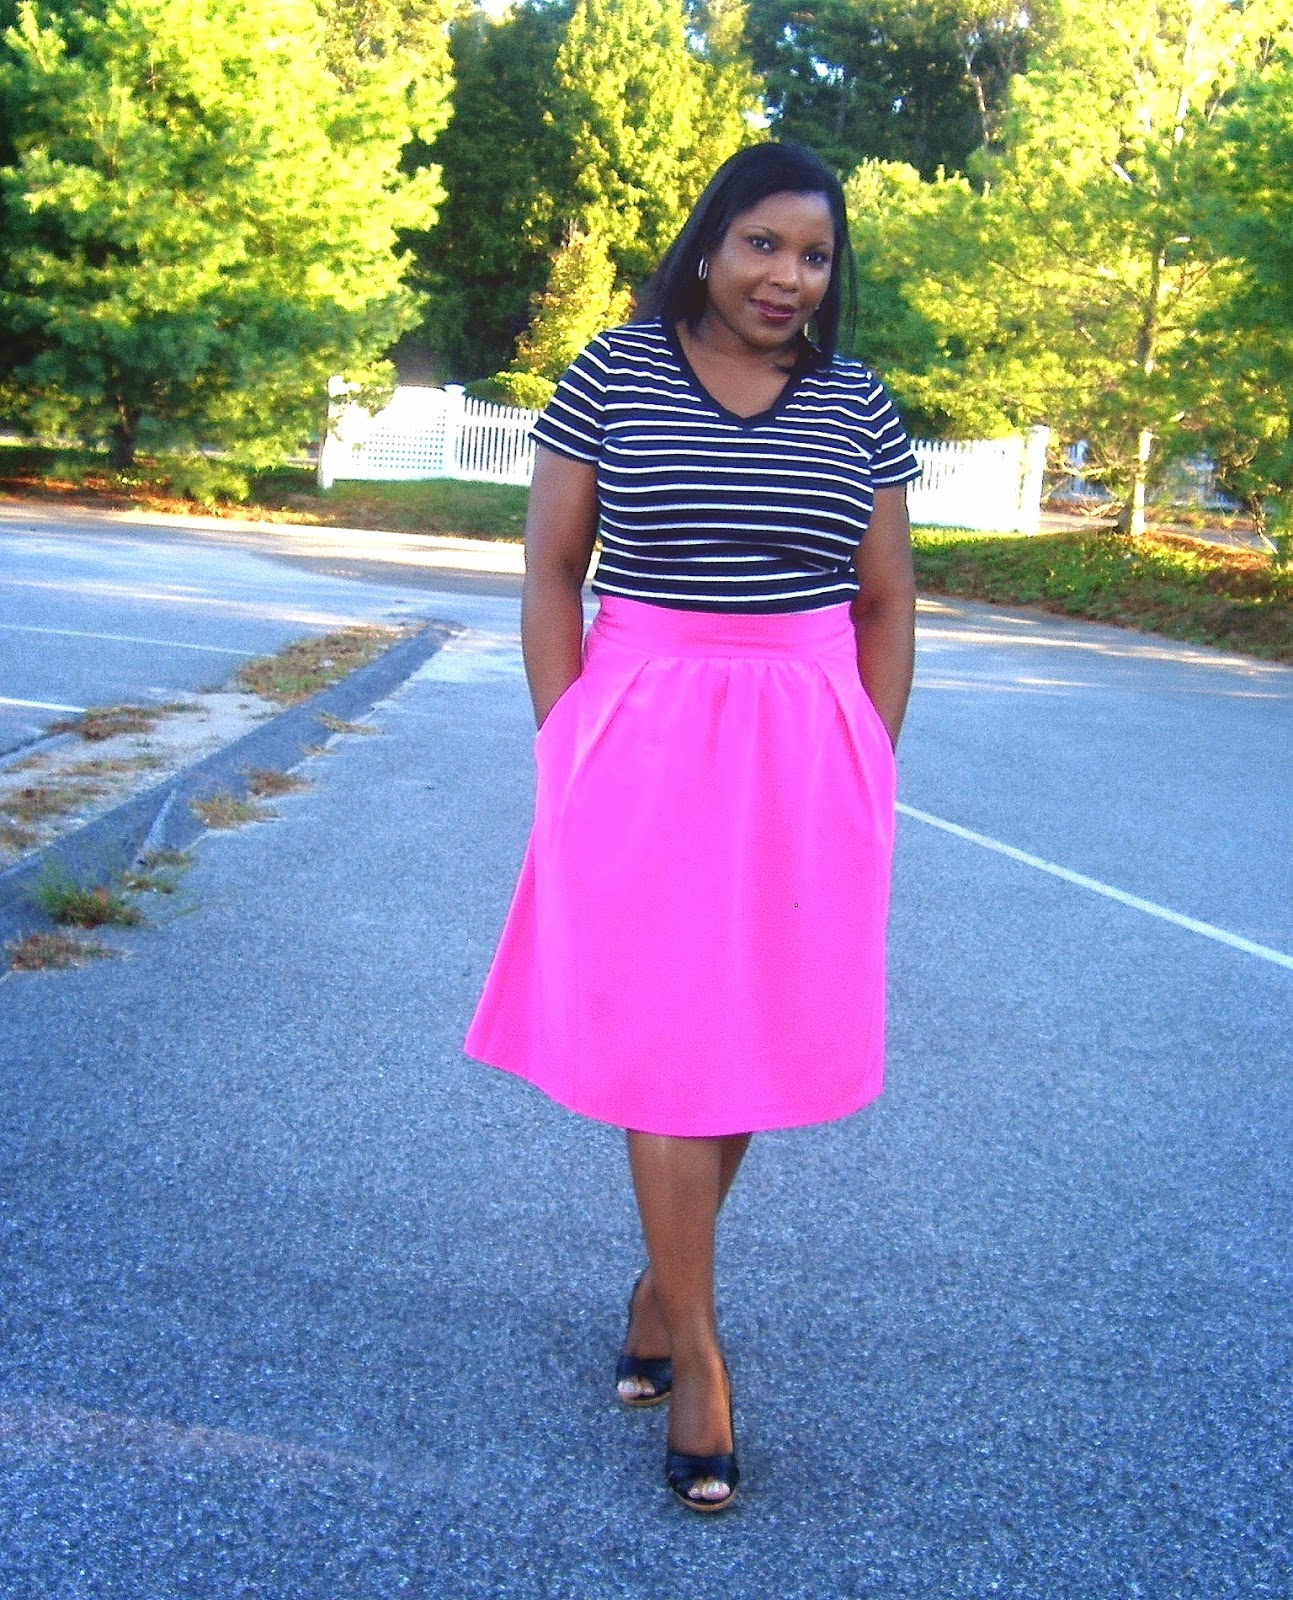 skirt with pockets, stripes and midi skirt